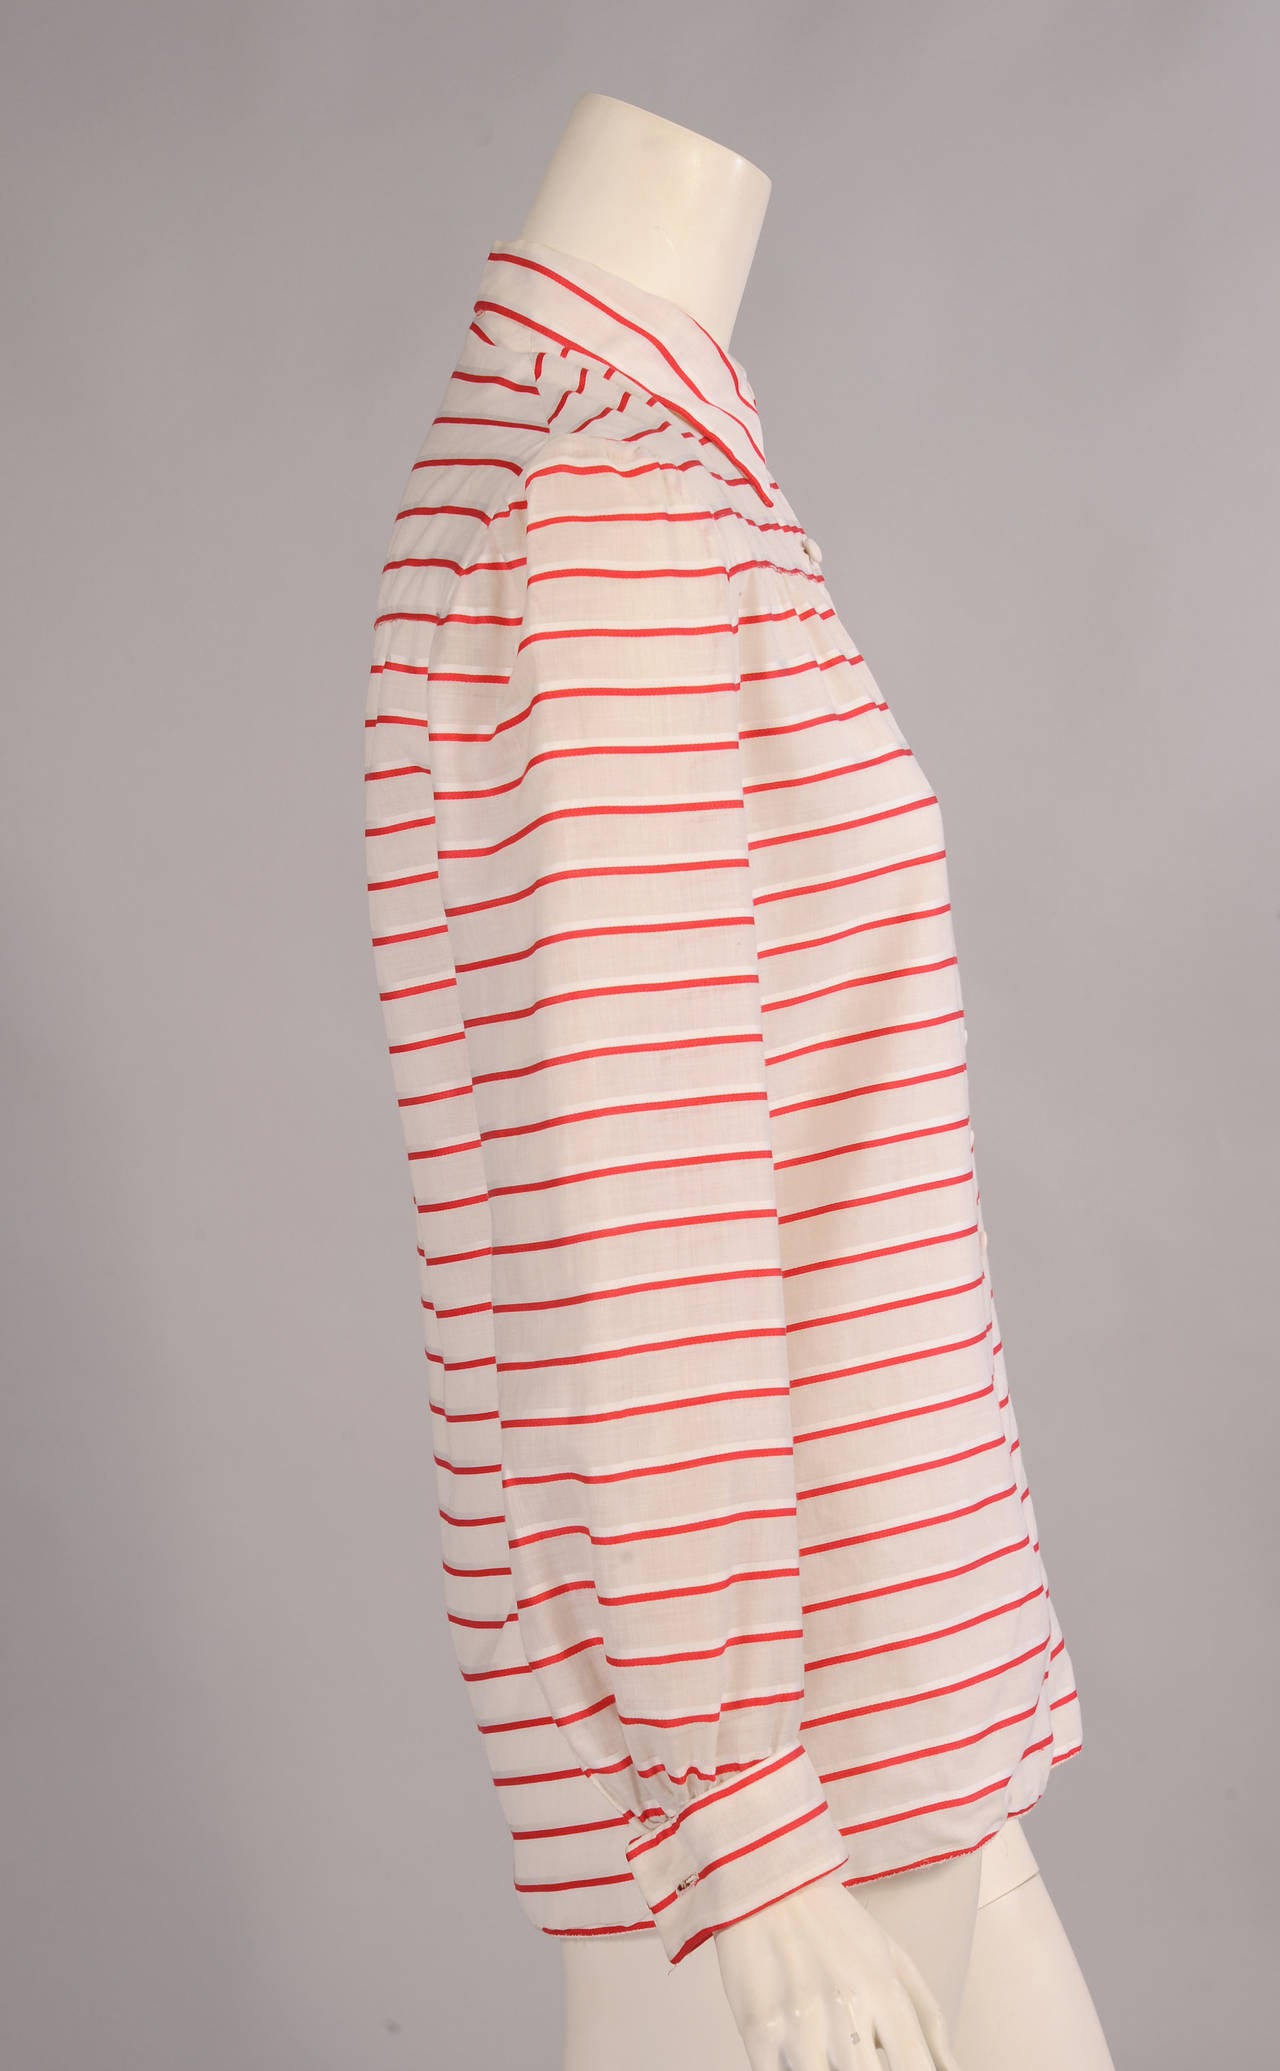 Red and white shadow striped cotton is used for this classic blouse with front and back yokes from Chanel Haute Couture. The blouse has white fabric covered buttons and cuffs that require cuff links. The body of the blouse is lined in white cotton